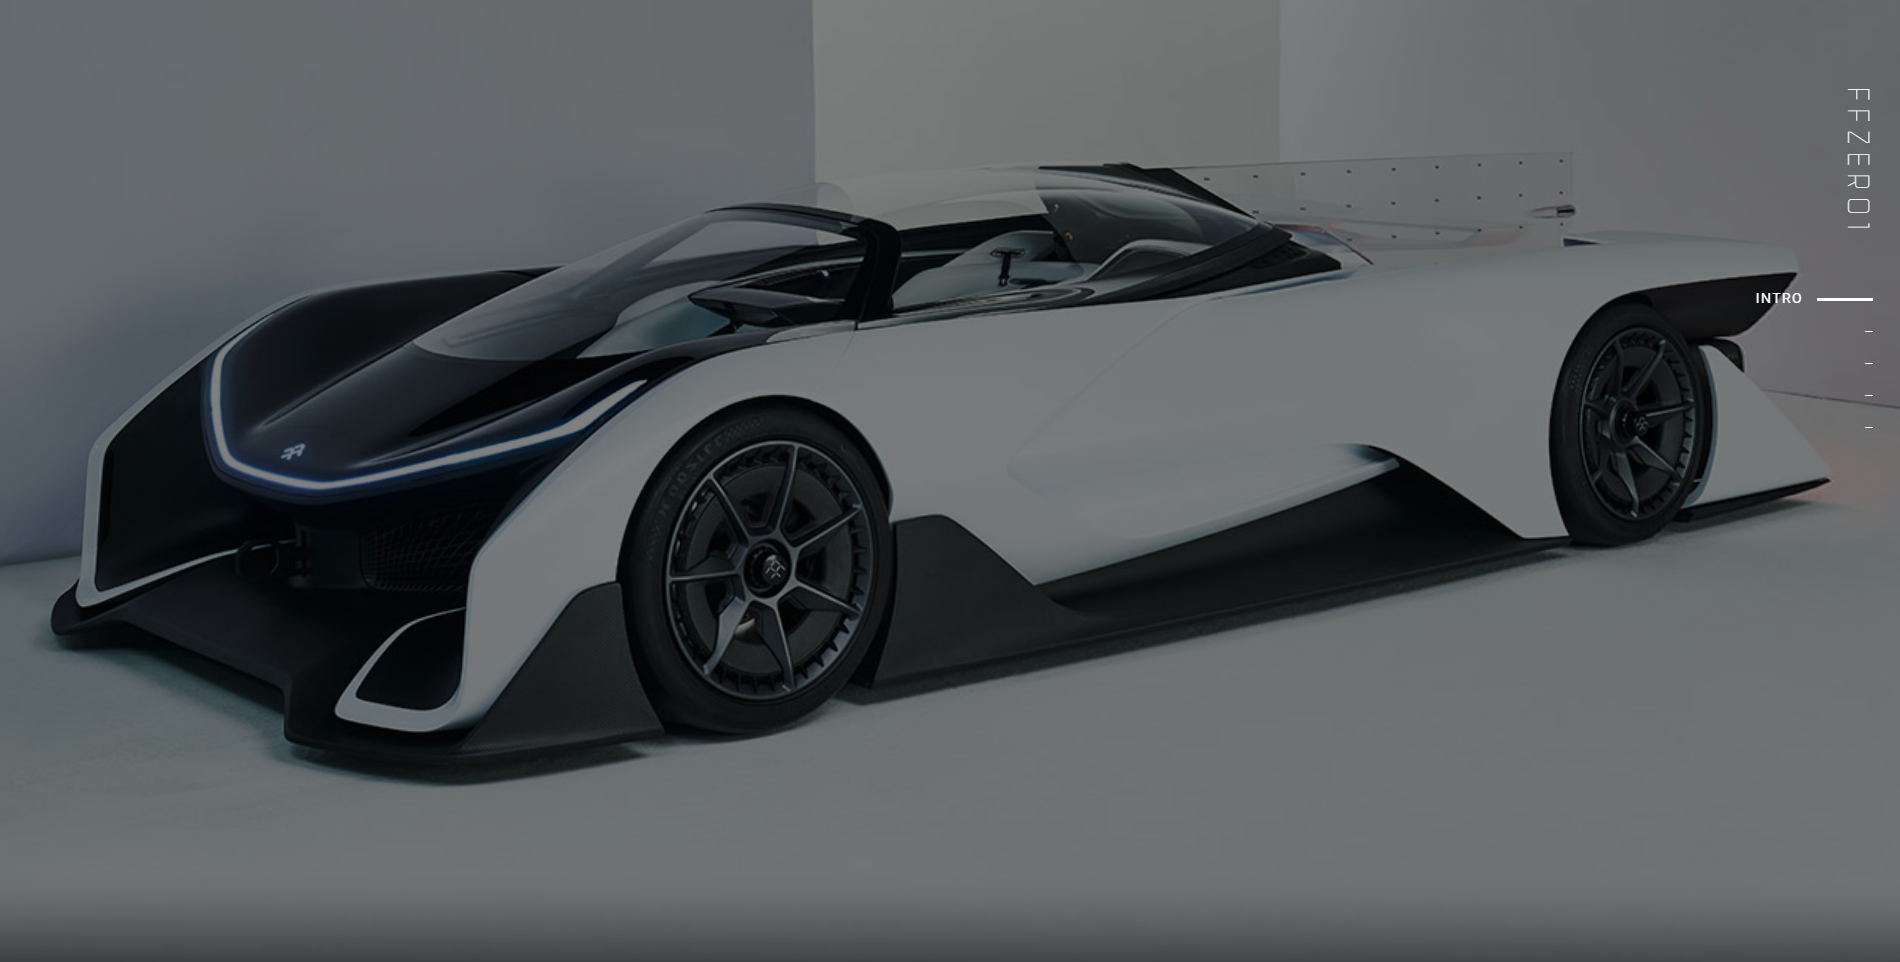 Faraday Future FFZERO1 EV